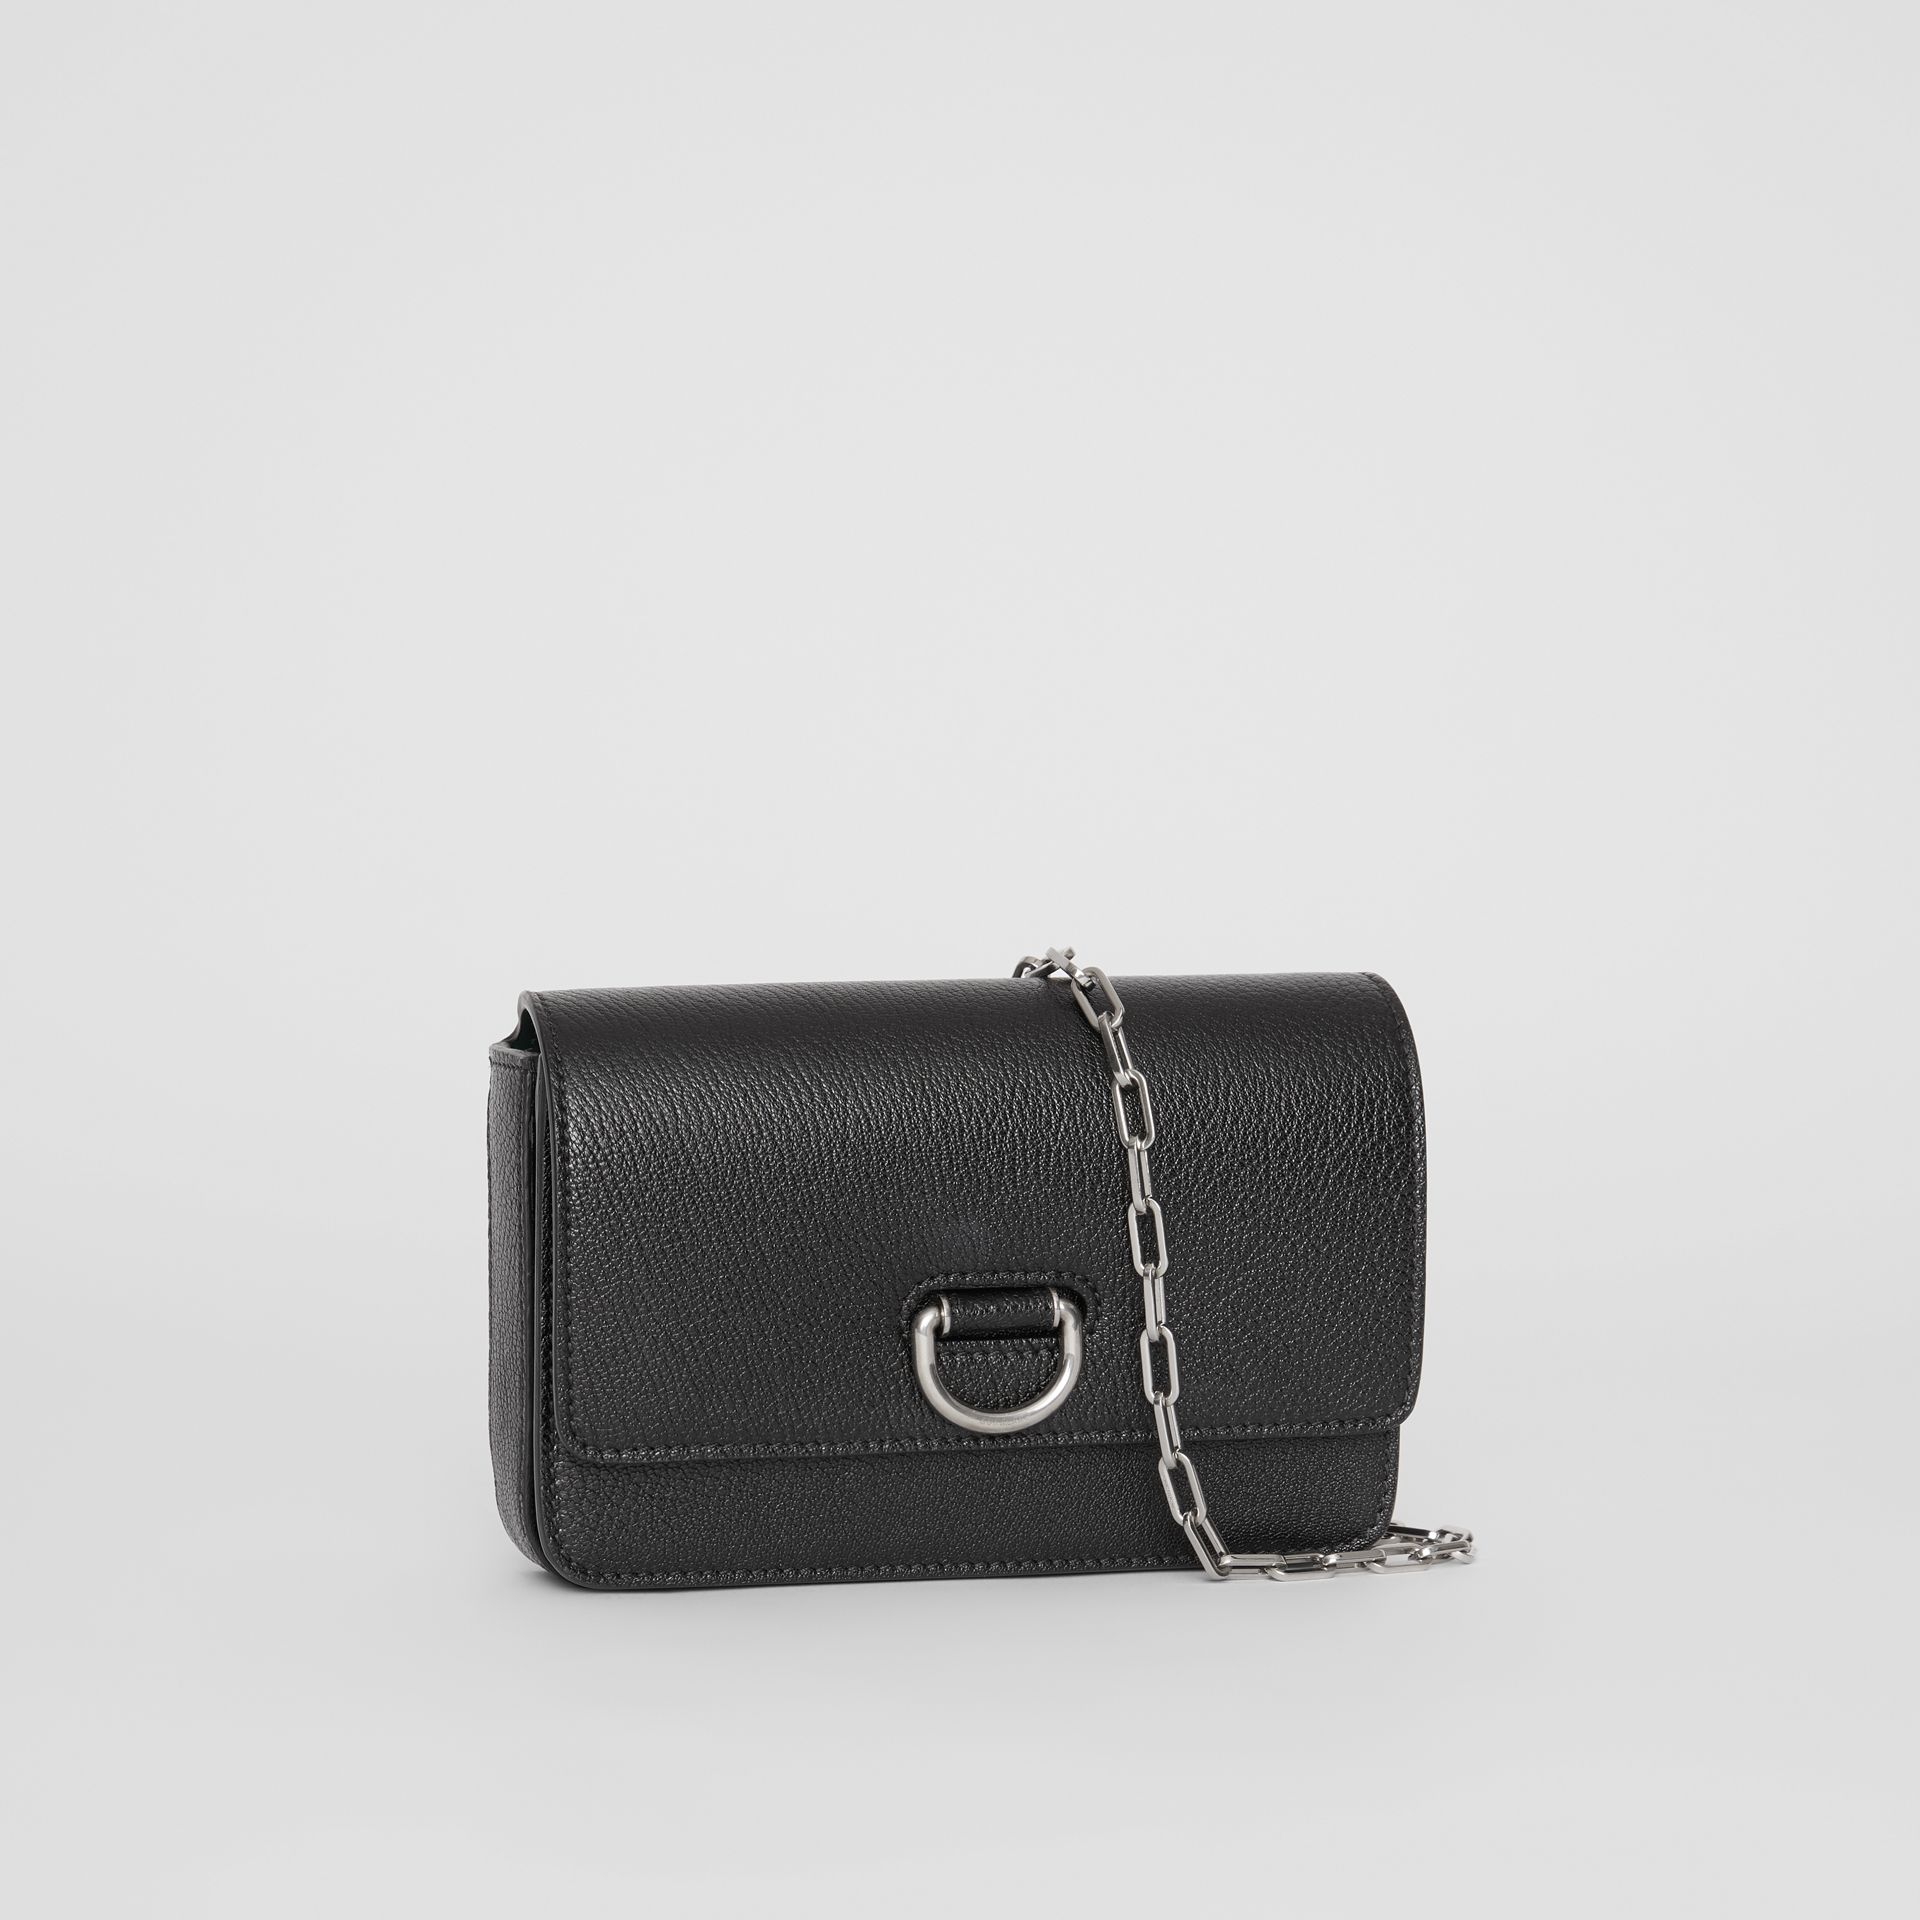 Mini sac The D-ring en cuir (Noir) - Femme | Burberry Canada - photo de la galerie 6